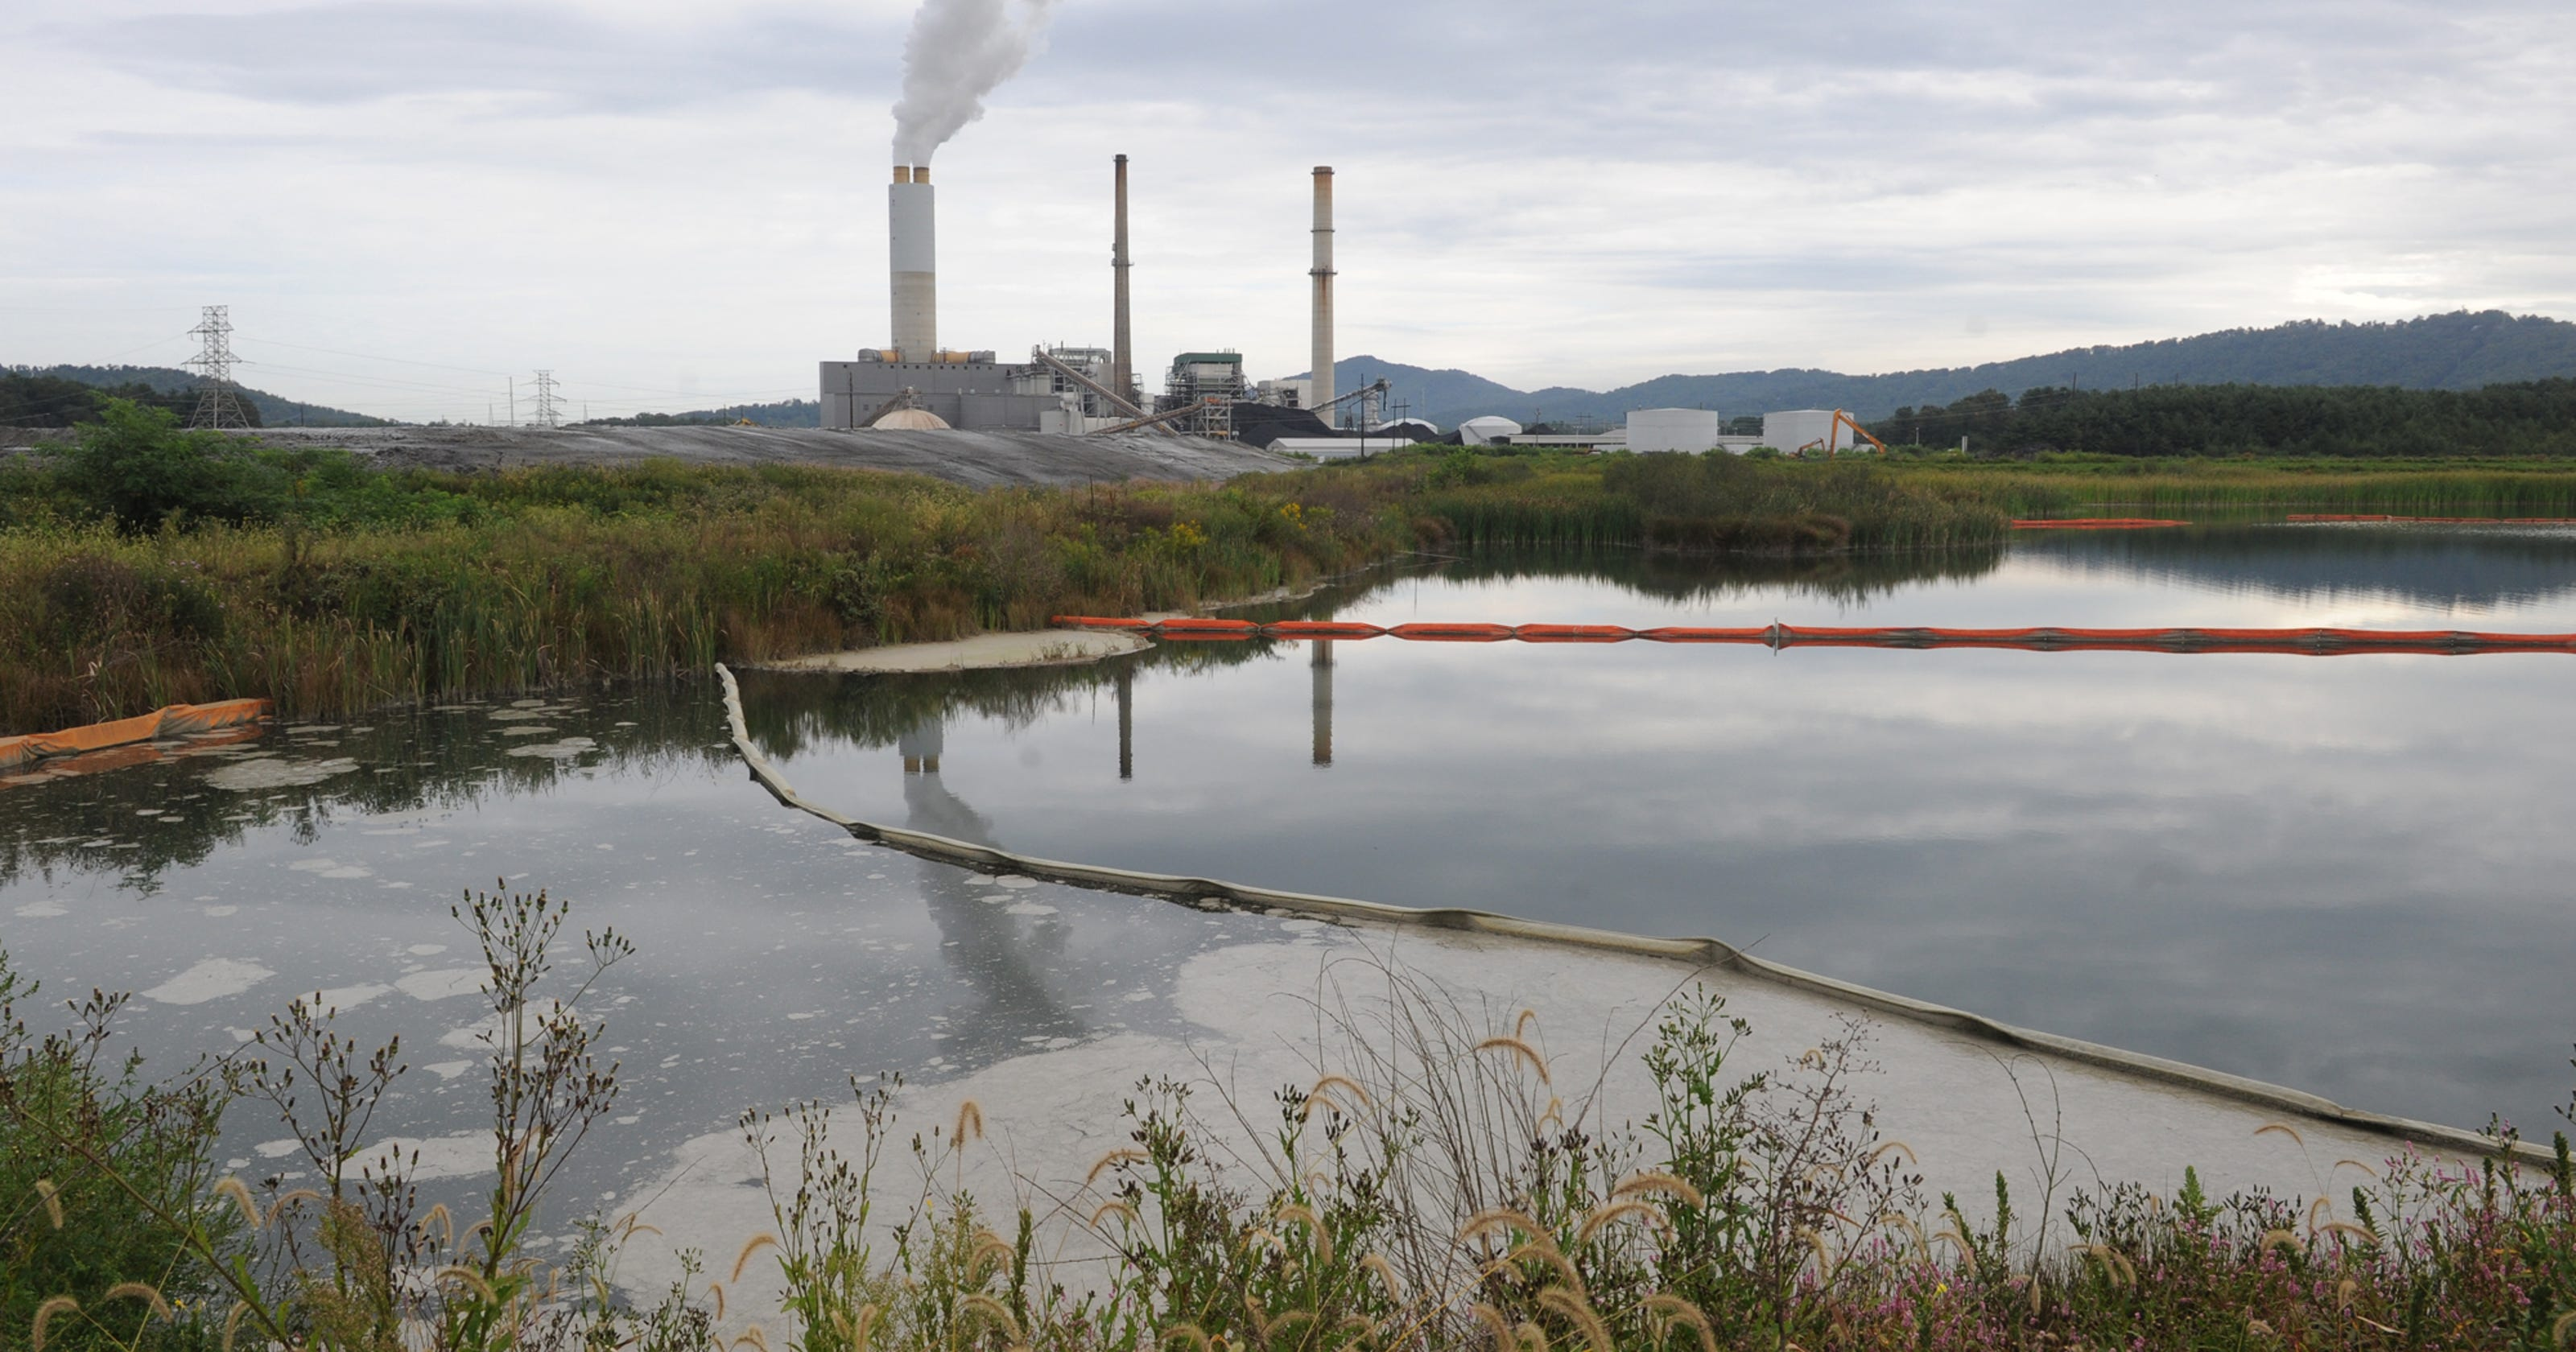 Coal ash dam safety claims questioned